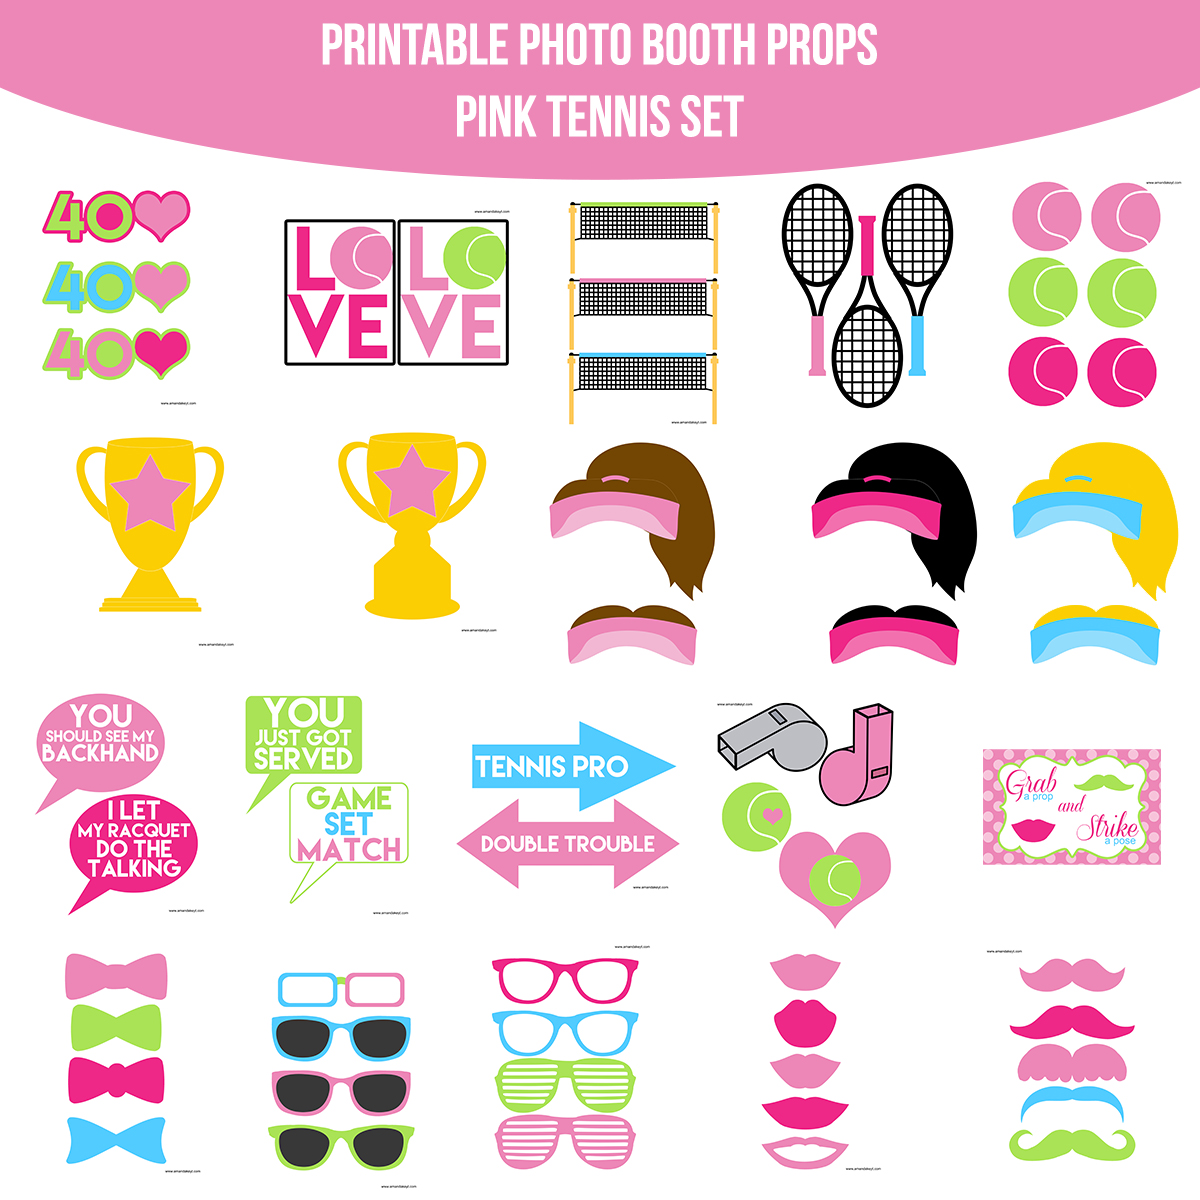 See the Set - To View The Whole Pink Tennis Printable Photo Booth Prop Set Click Here